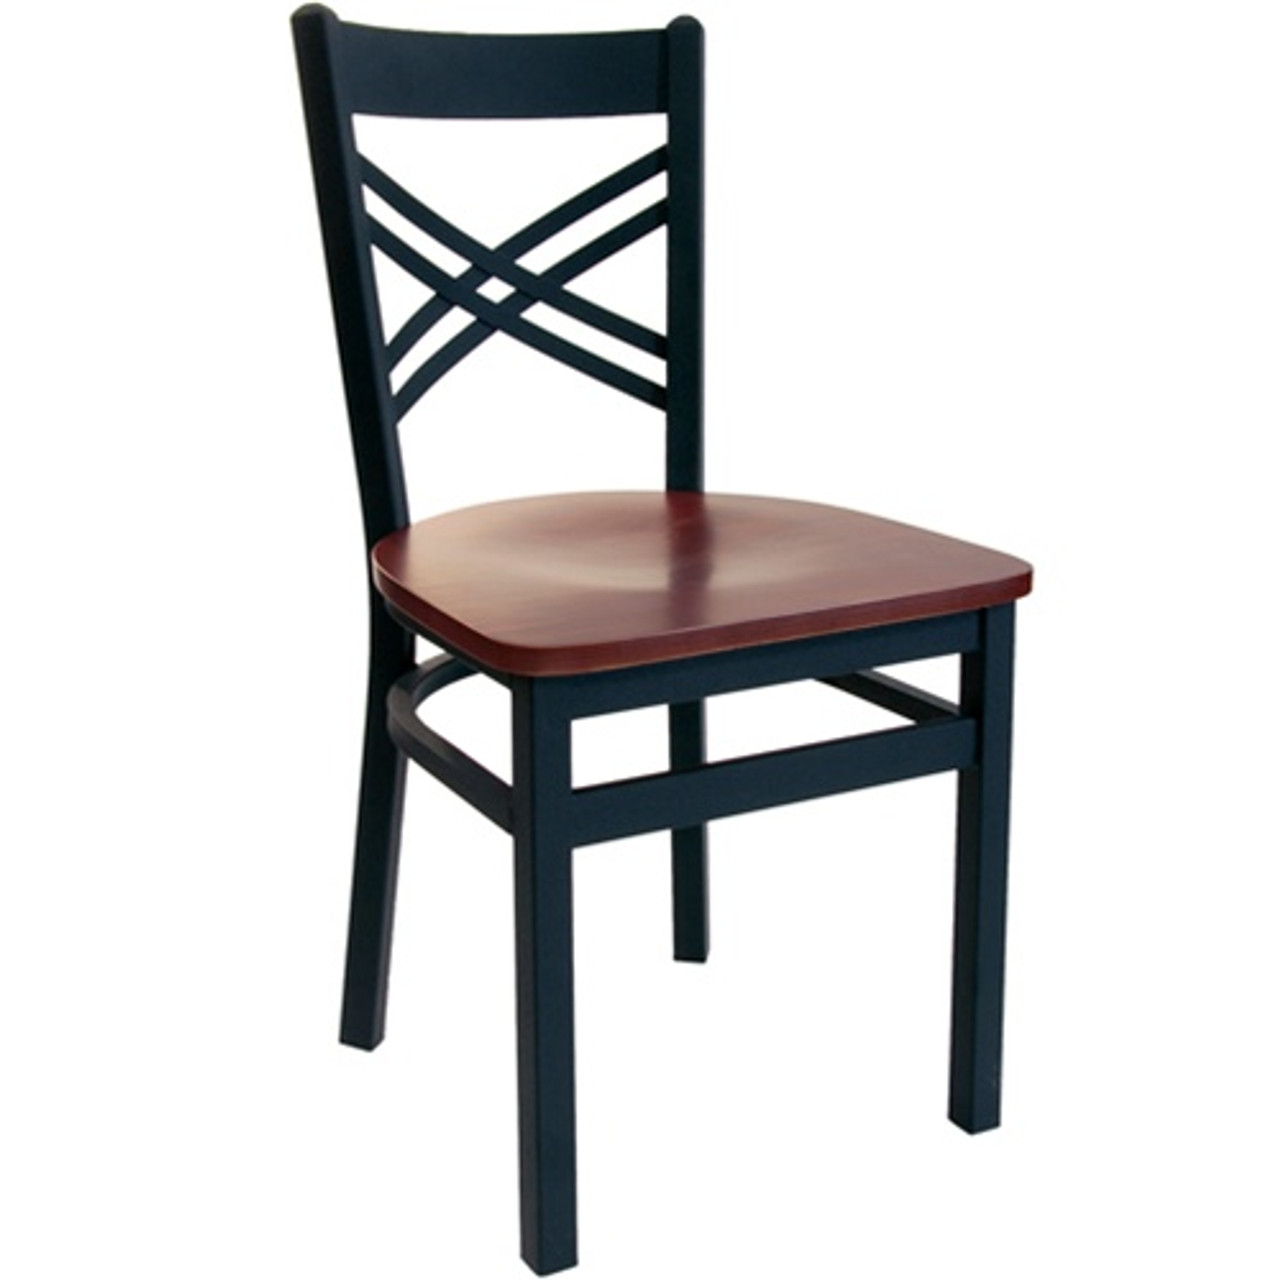 Bfm Seating Akrin Black Metal Cross Back Restaurant Chair With Wood Seat 2130c Sbw